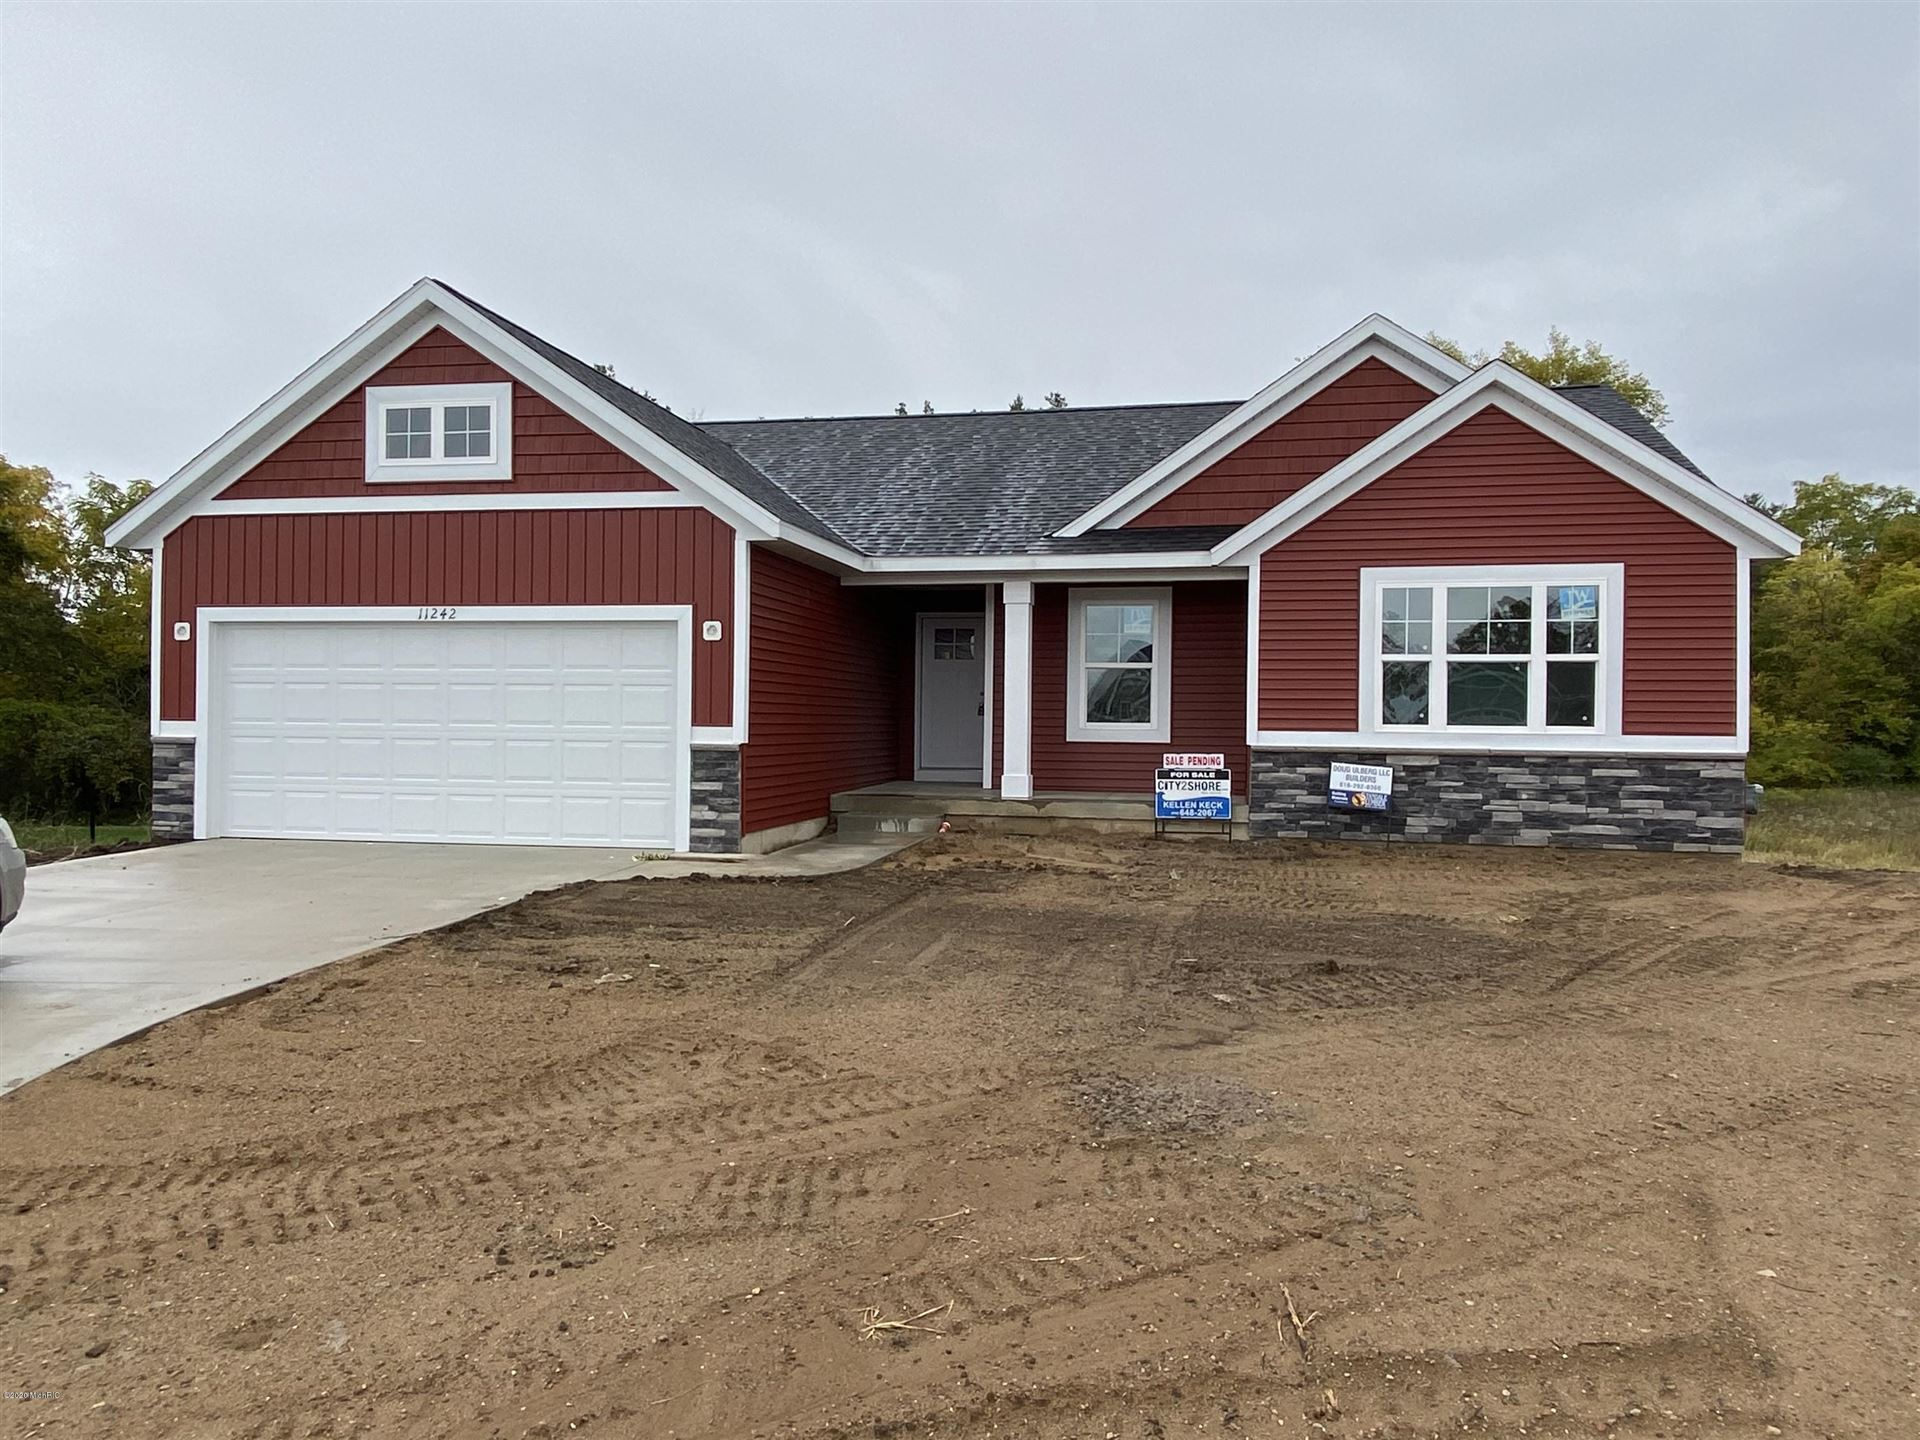 11242 Wild Duck Lane, Allendale, MI 49401 - MLS#: 20014315